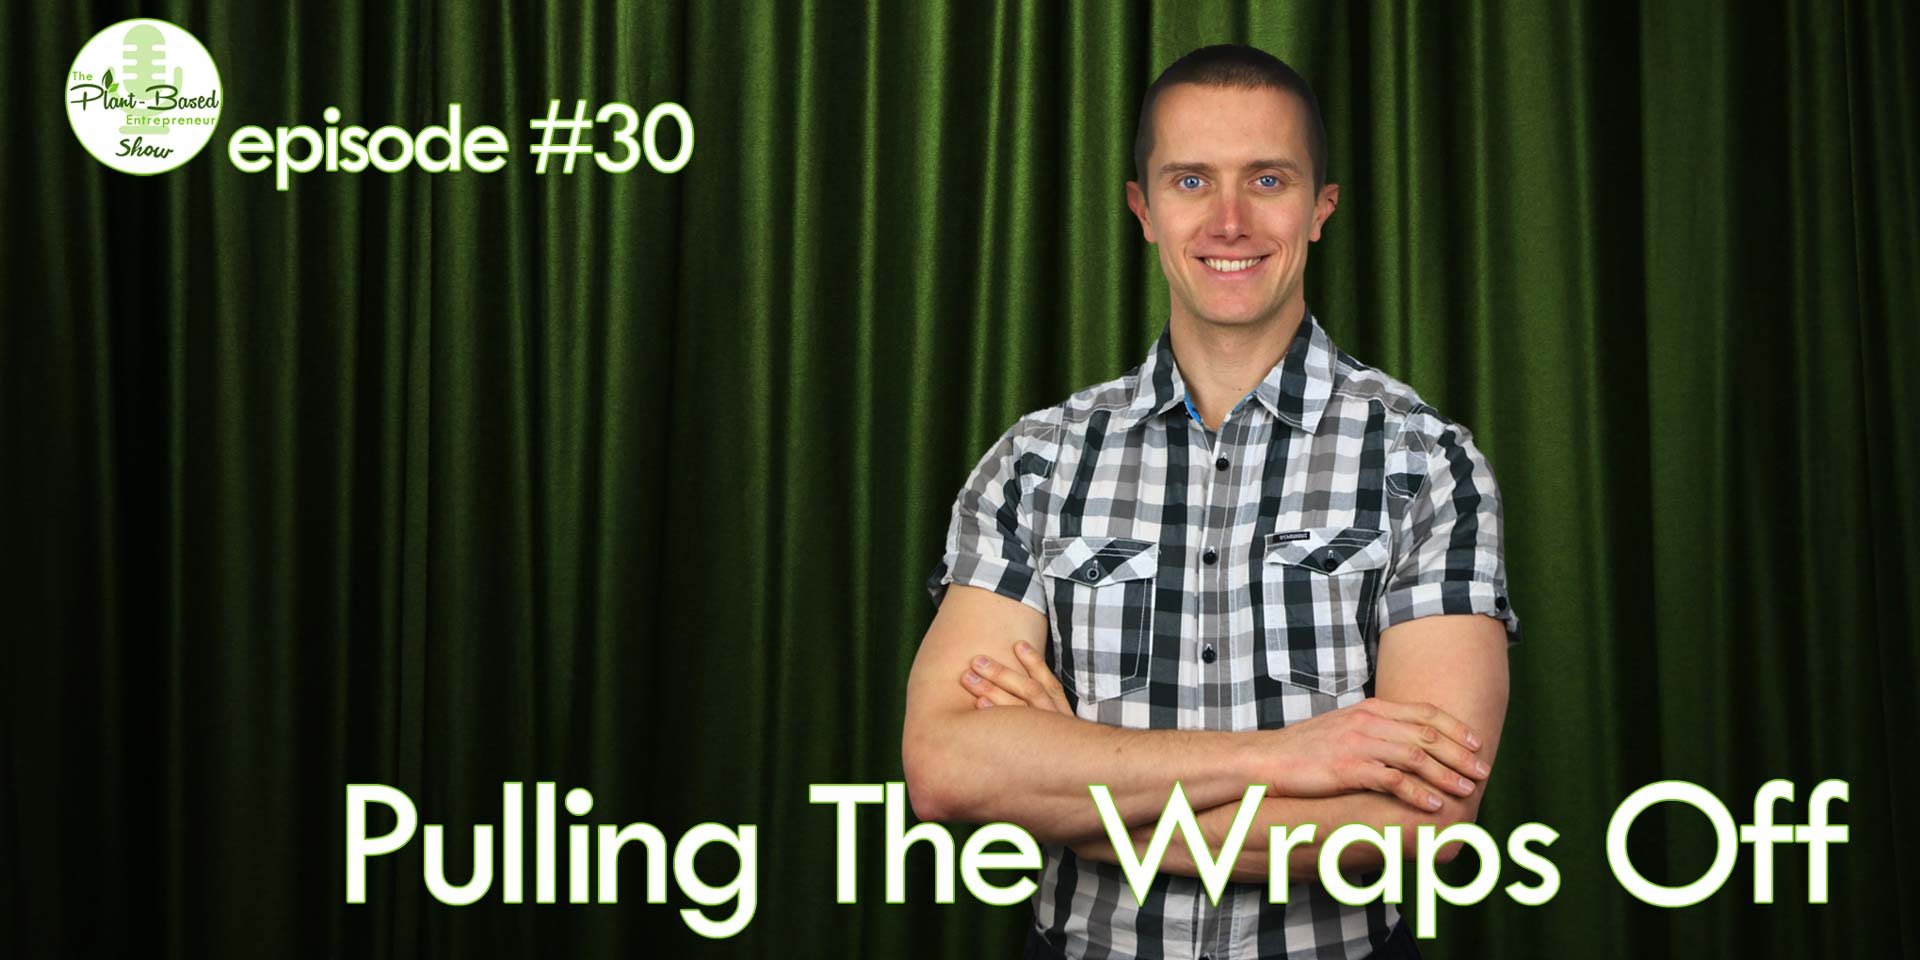 Episode #30 - Pulling The Wraps Off